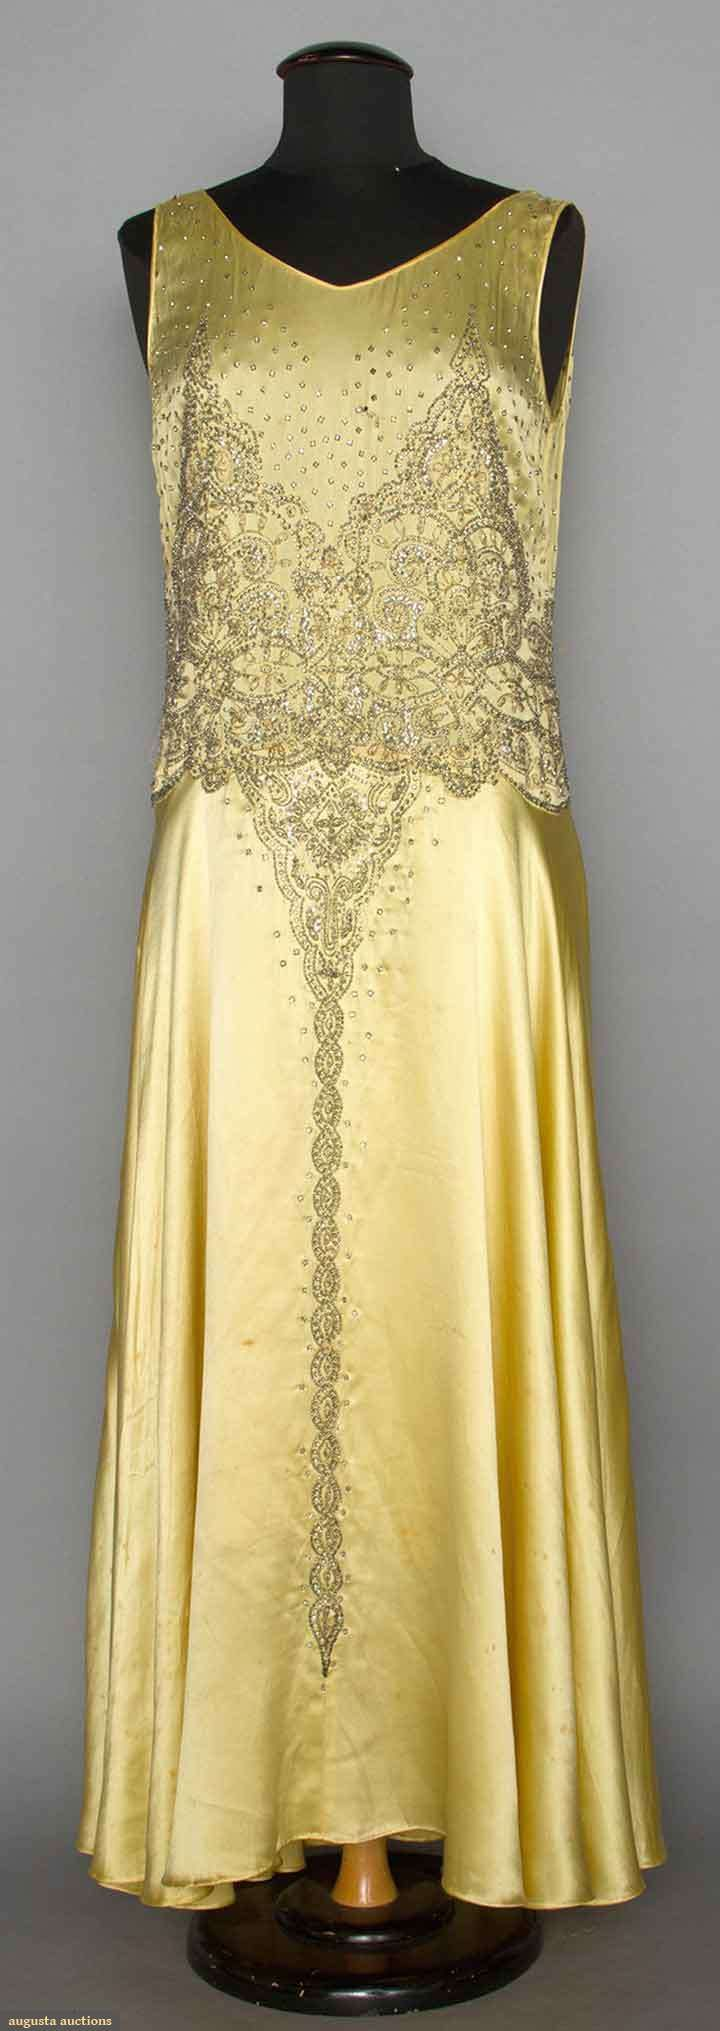 Two Silk Satin Evening Gowns, 1930s, Augusta Auctions, MAY 13th & 14th, 2014, Lot 118